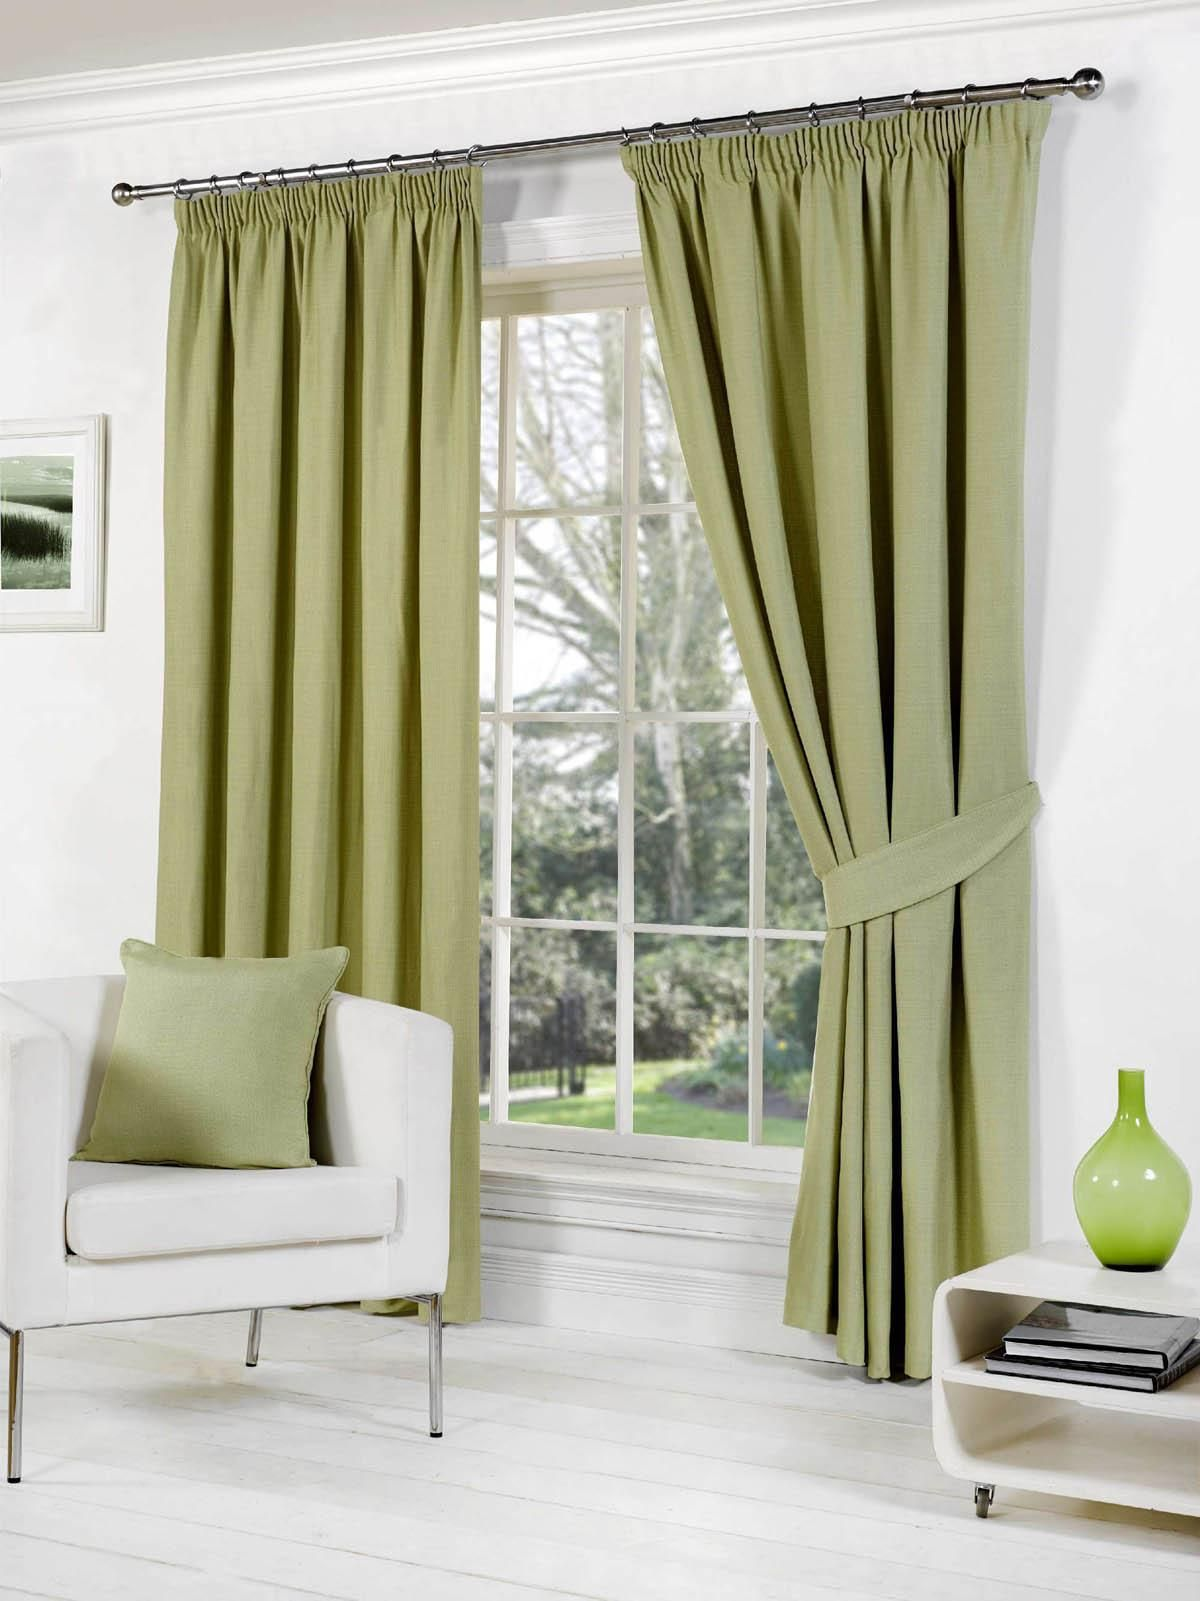 april ready lined fully leaf sizes eyelet curtains pair made design teal ring itm curtain top